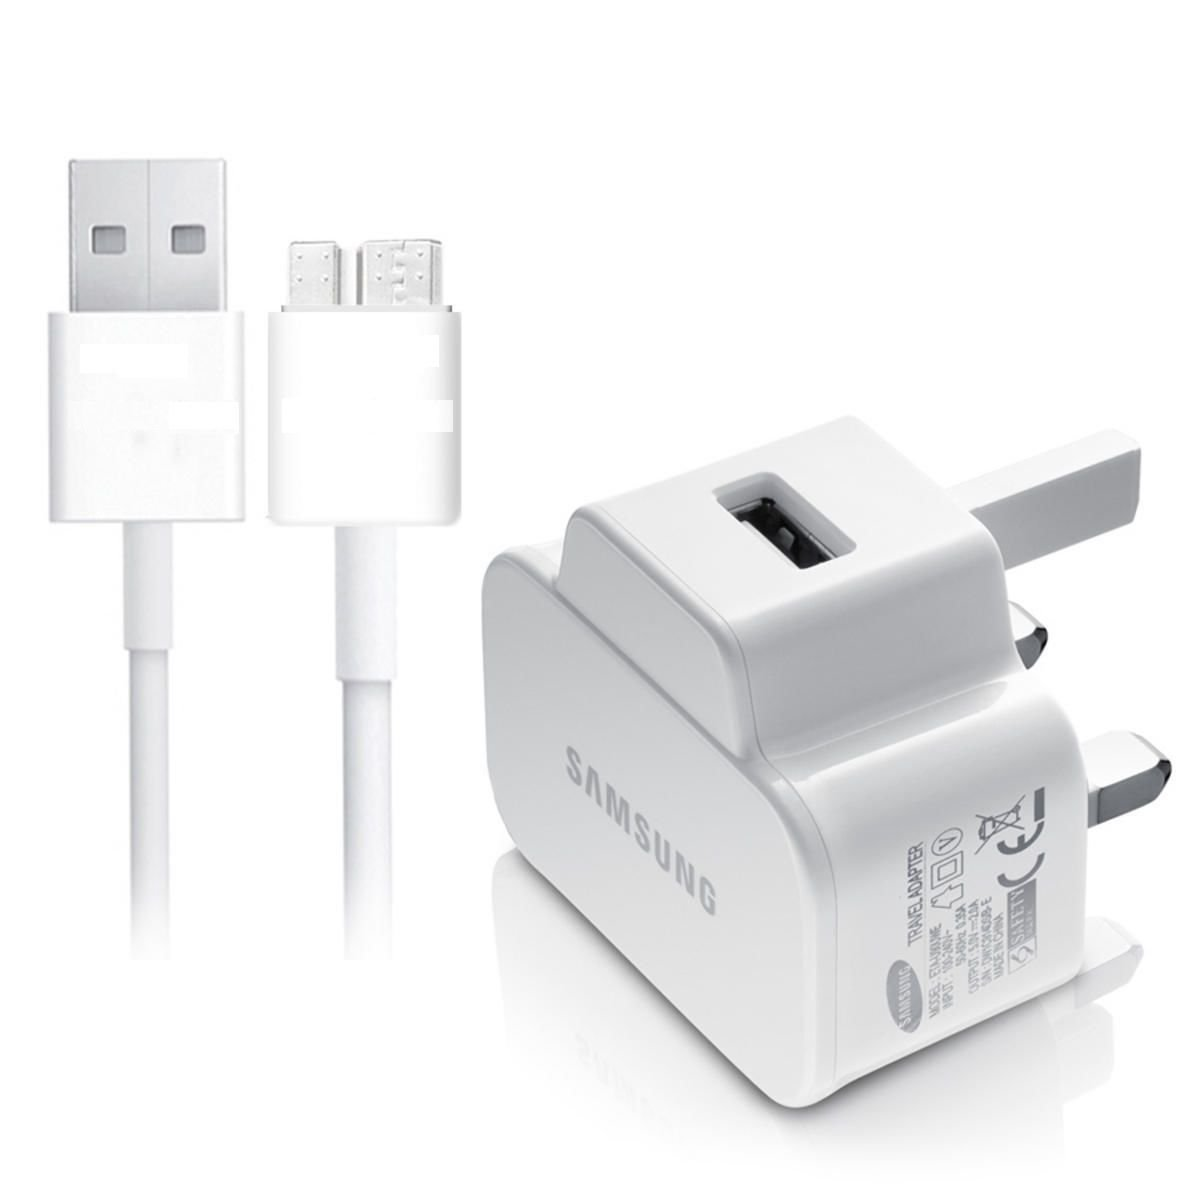 REPLACEMENT SAMSUNG GALAXY NOTE 3, S5 WALL CHARGERS MAINS+ 3 METER CABLE